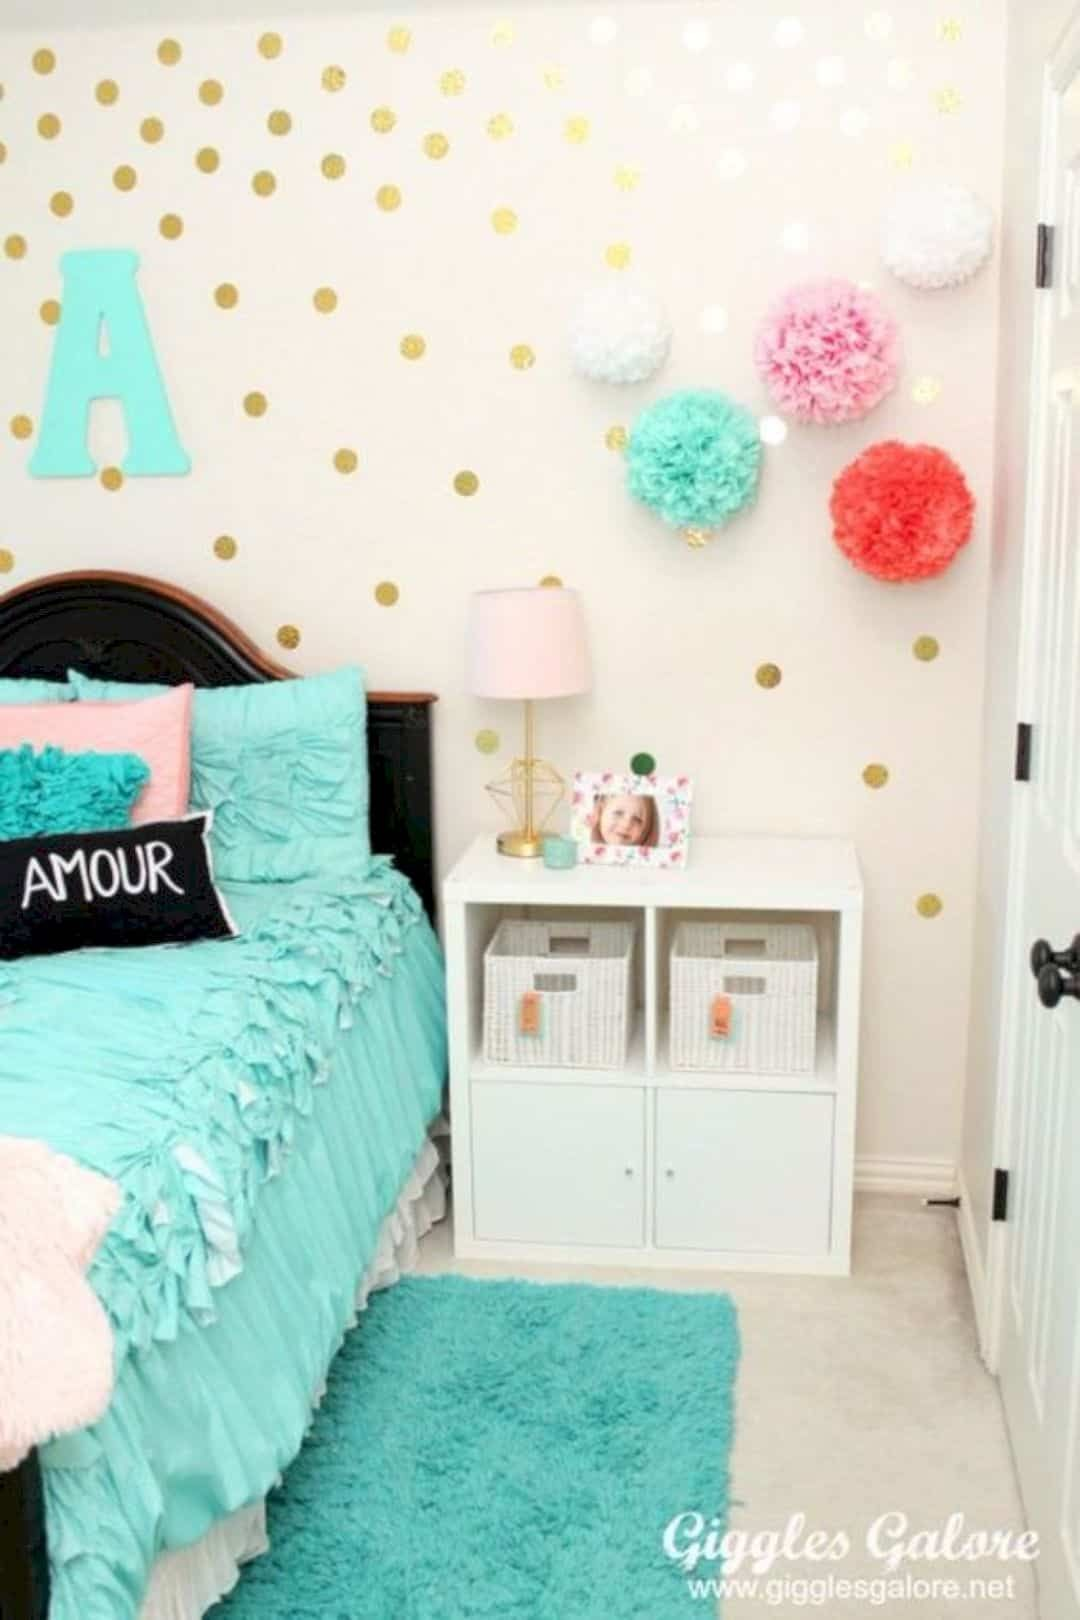 16 Diy Projects To Decorate Your Rooms On Budget Cute Bedroom